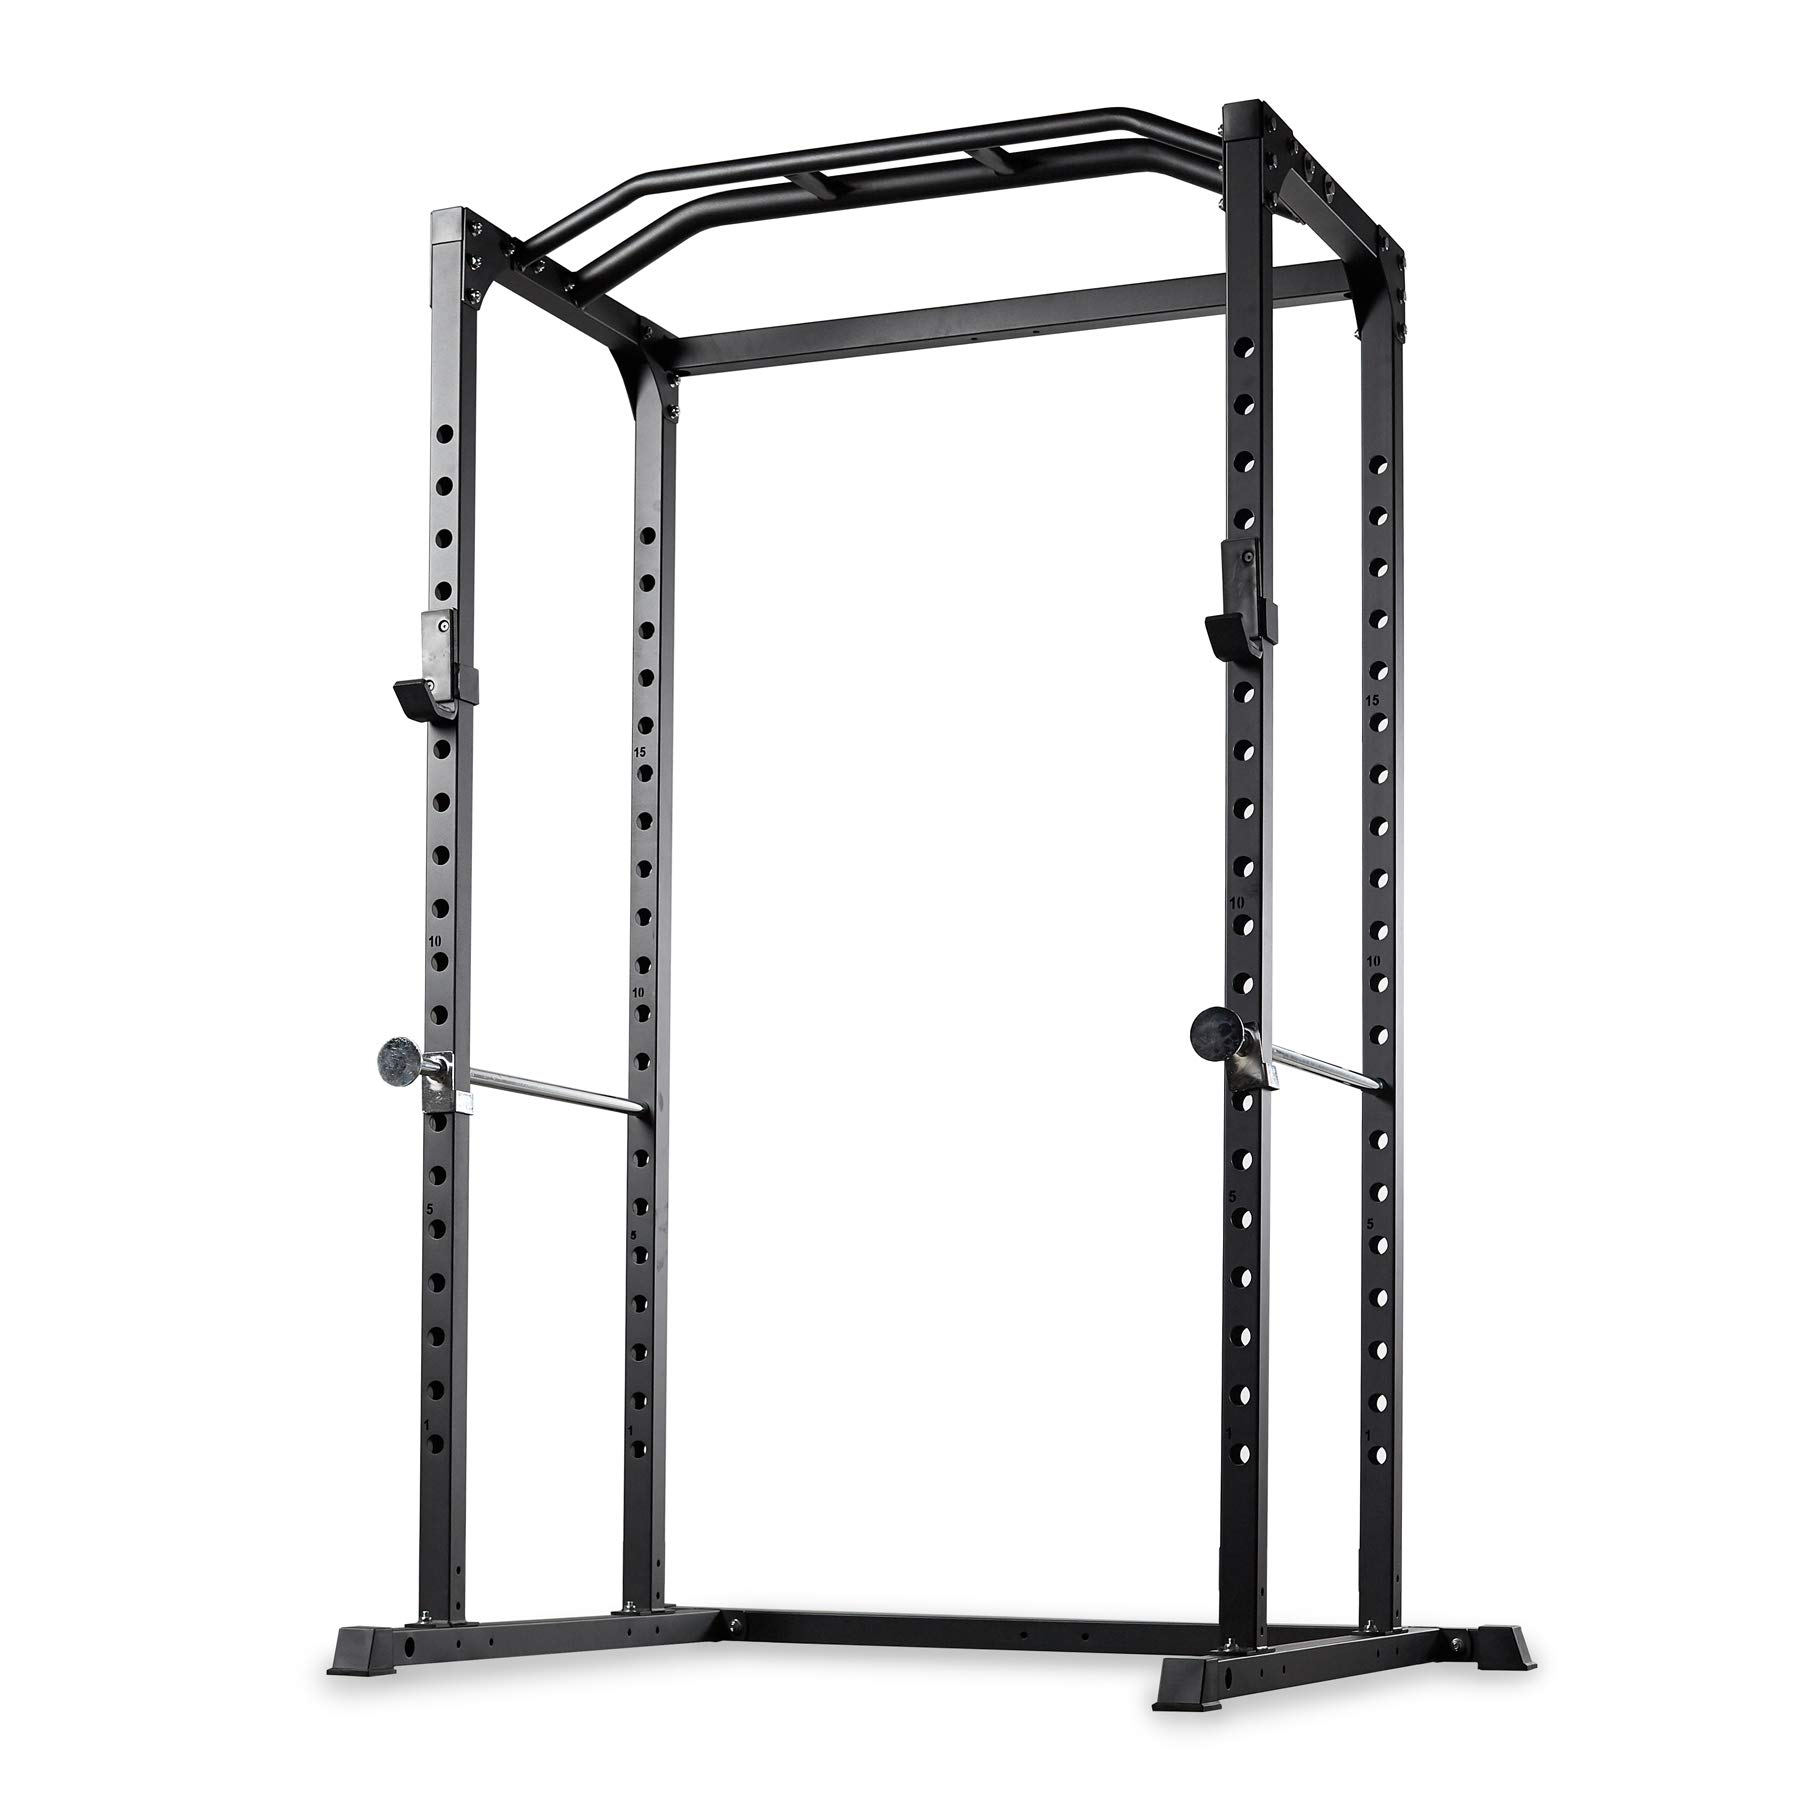 Rep PR-1100 Power Rack - 1,000 lbs Rated Lifting Cage for Weight Training